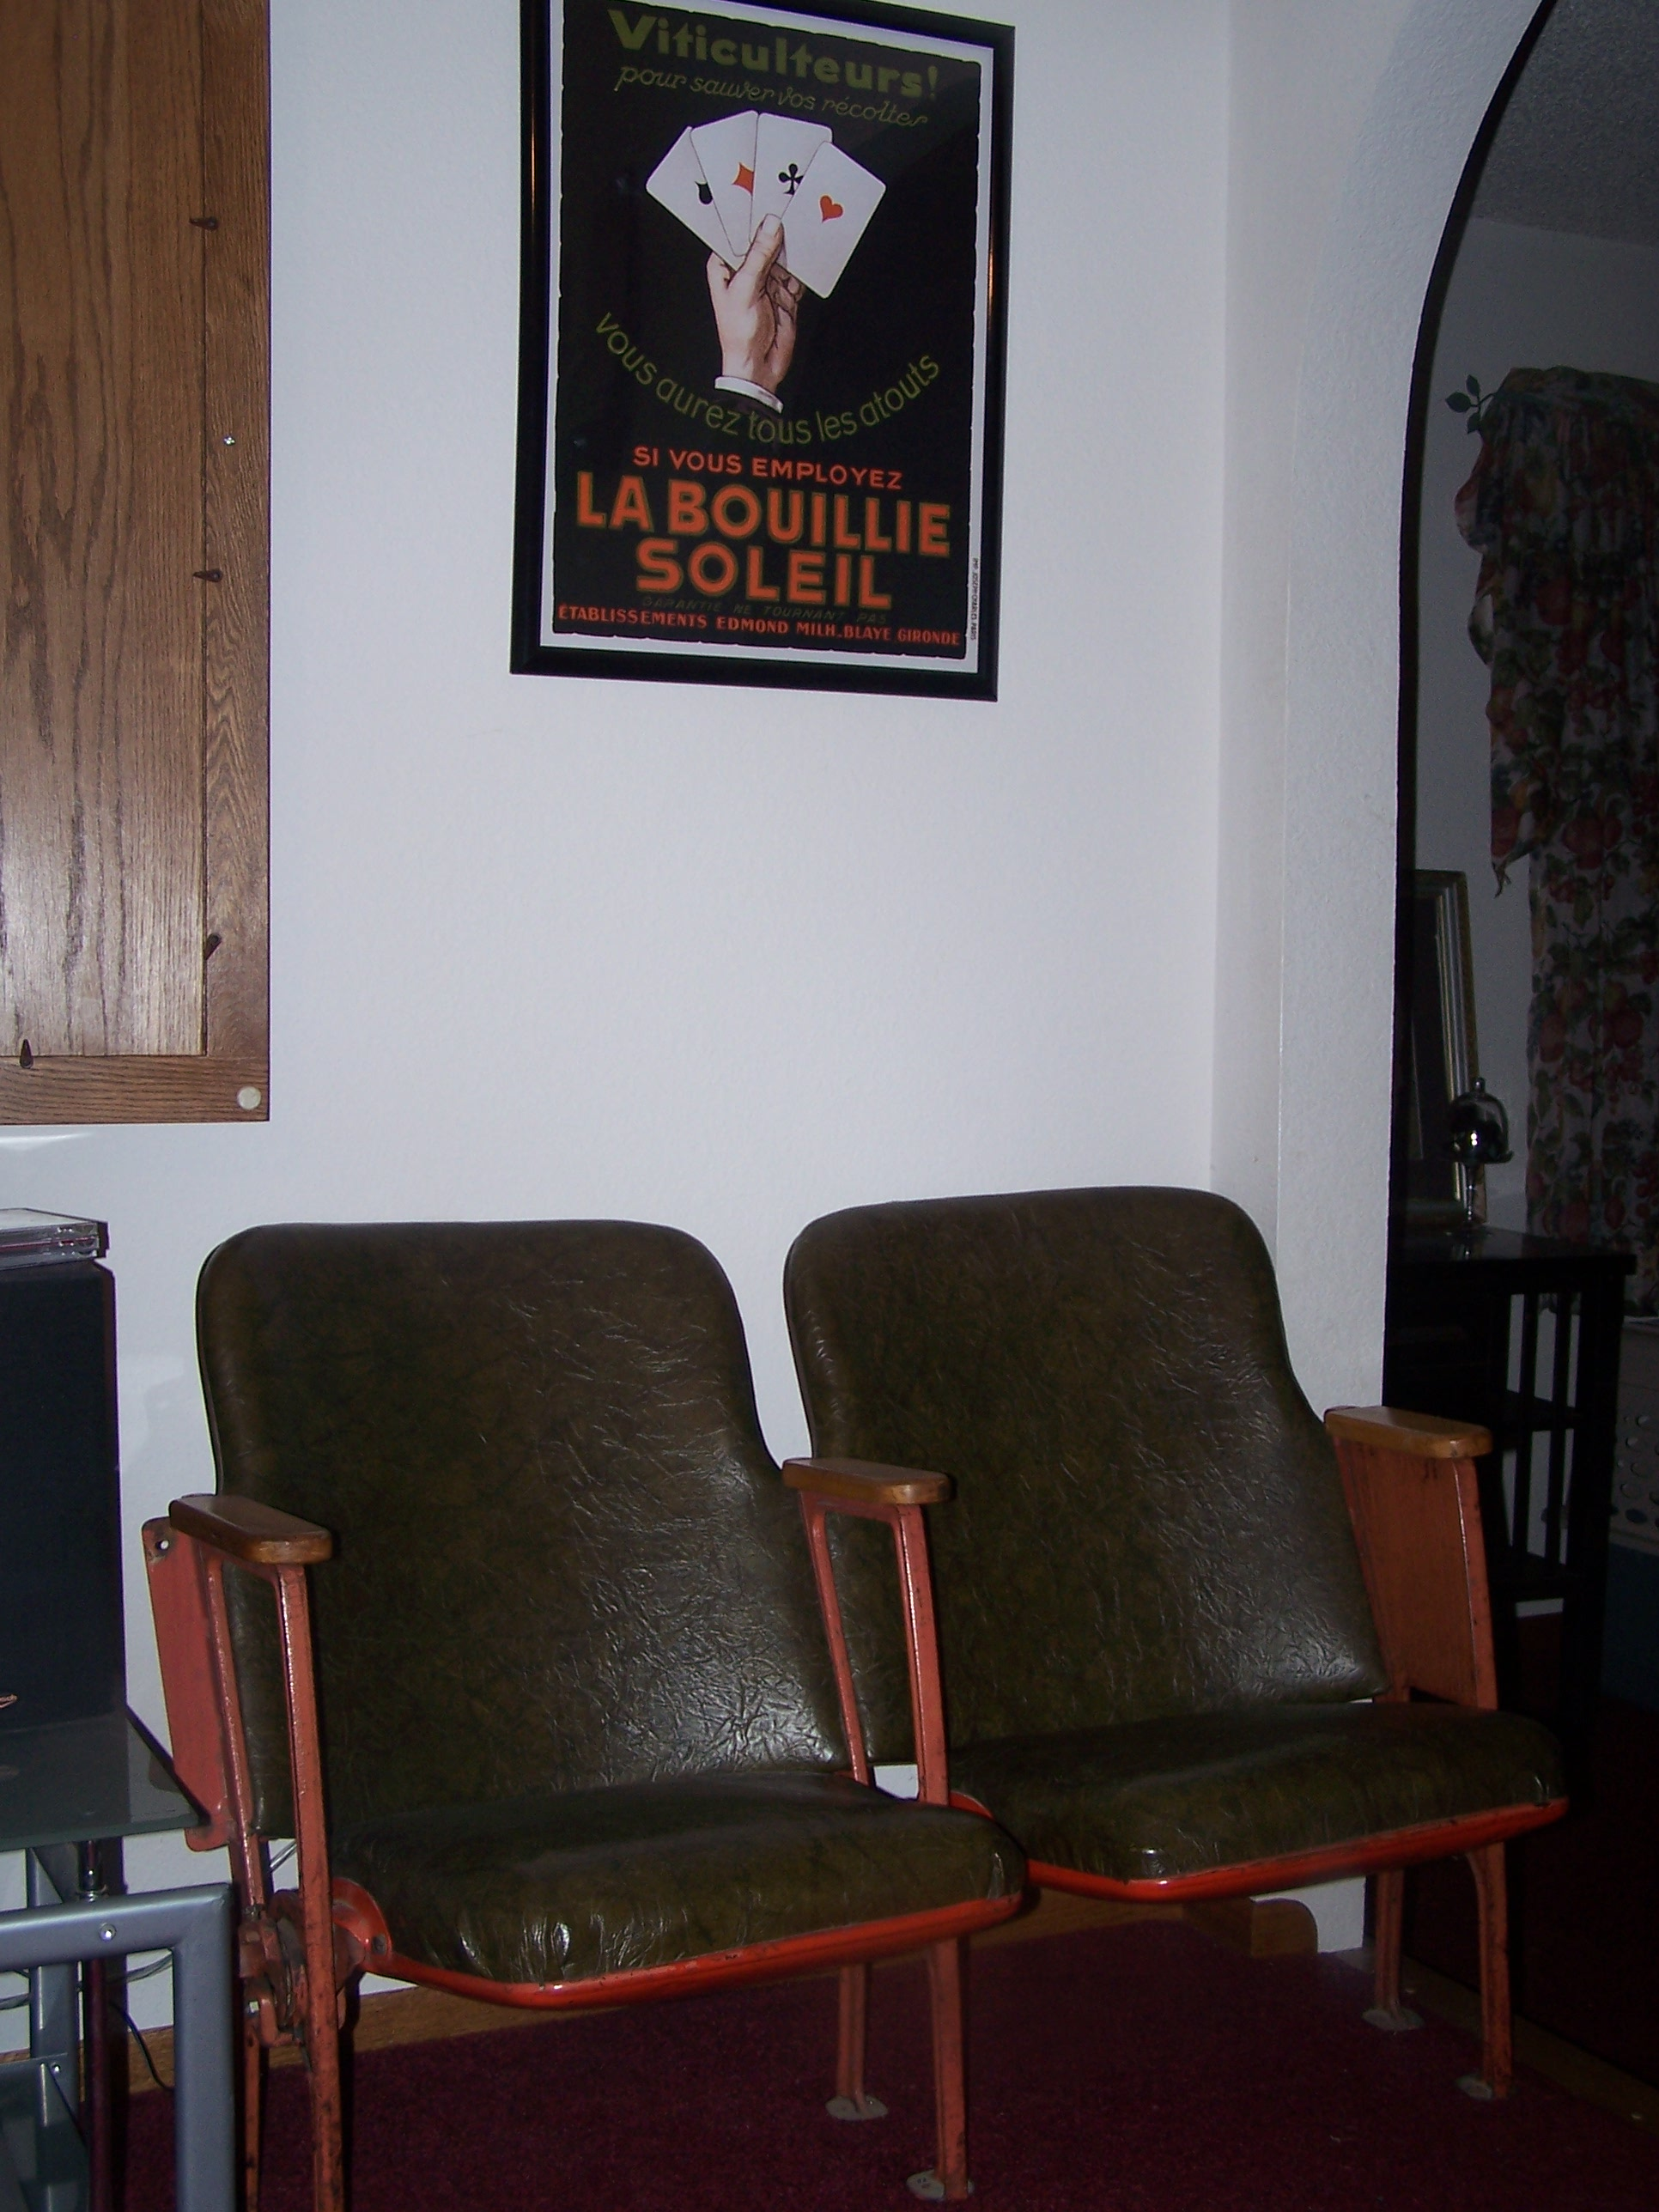 These old movie theater seats were a salvaged find.  They sit next to the TV on the right.  The vintage ad above matches them so well.